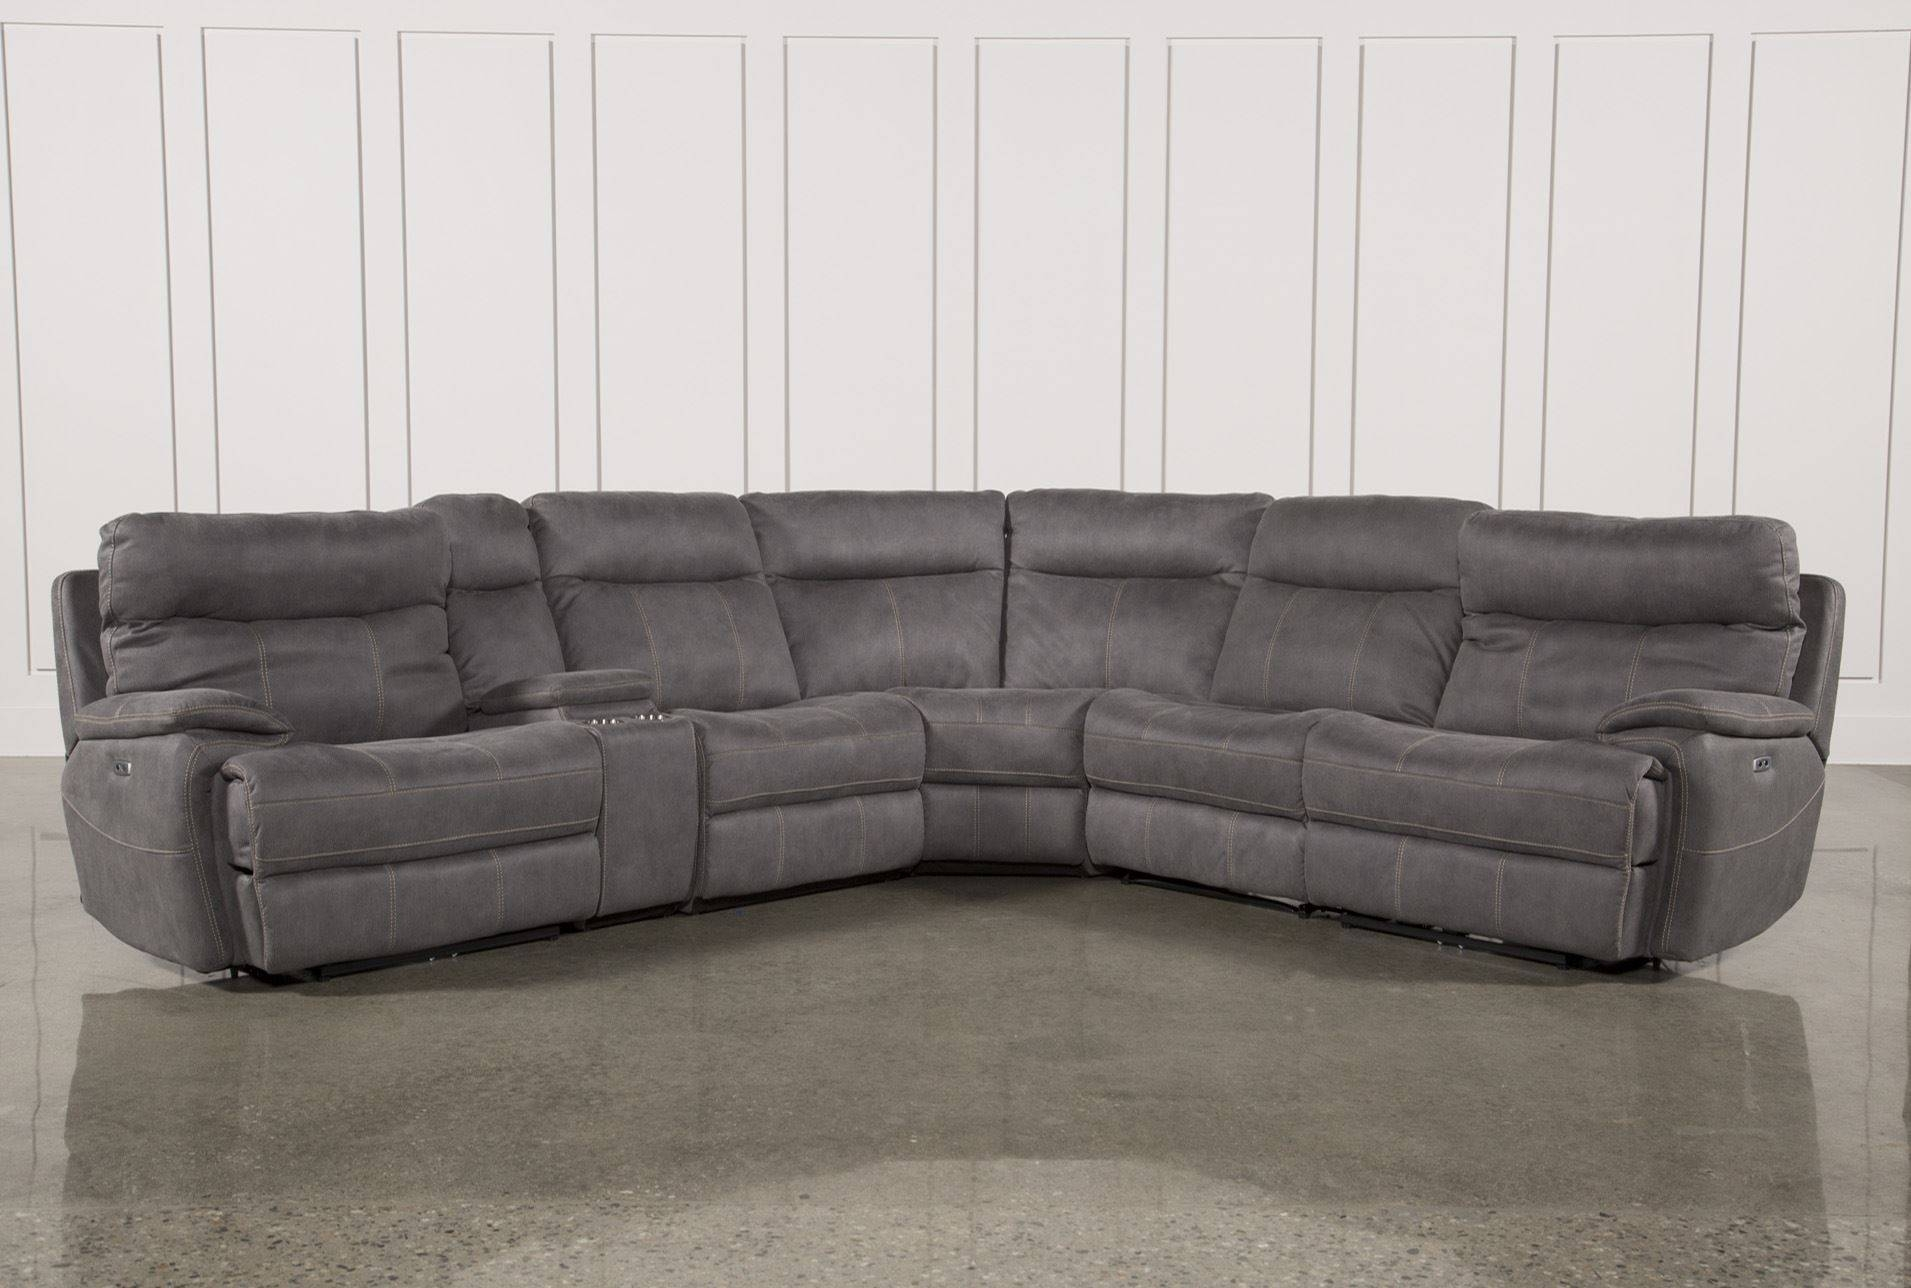 Furniture: Exciting Sectional Sofas Costco For Your Family Room With Apartment Sofa Sectional (Image 18 of 30)